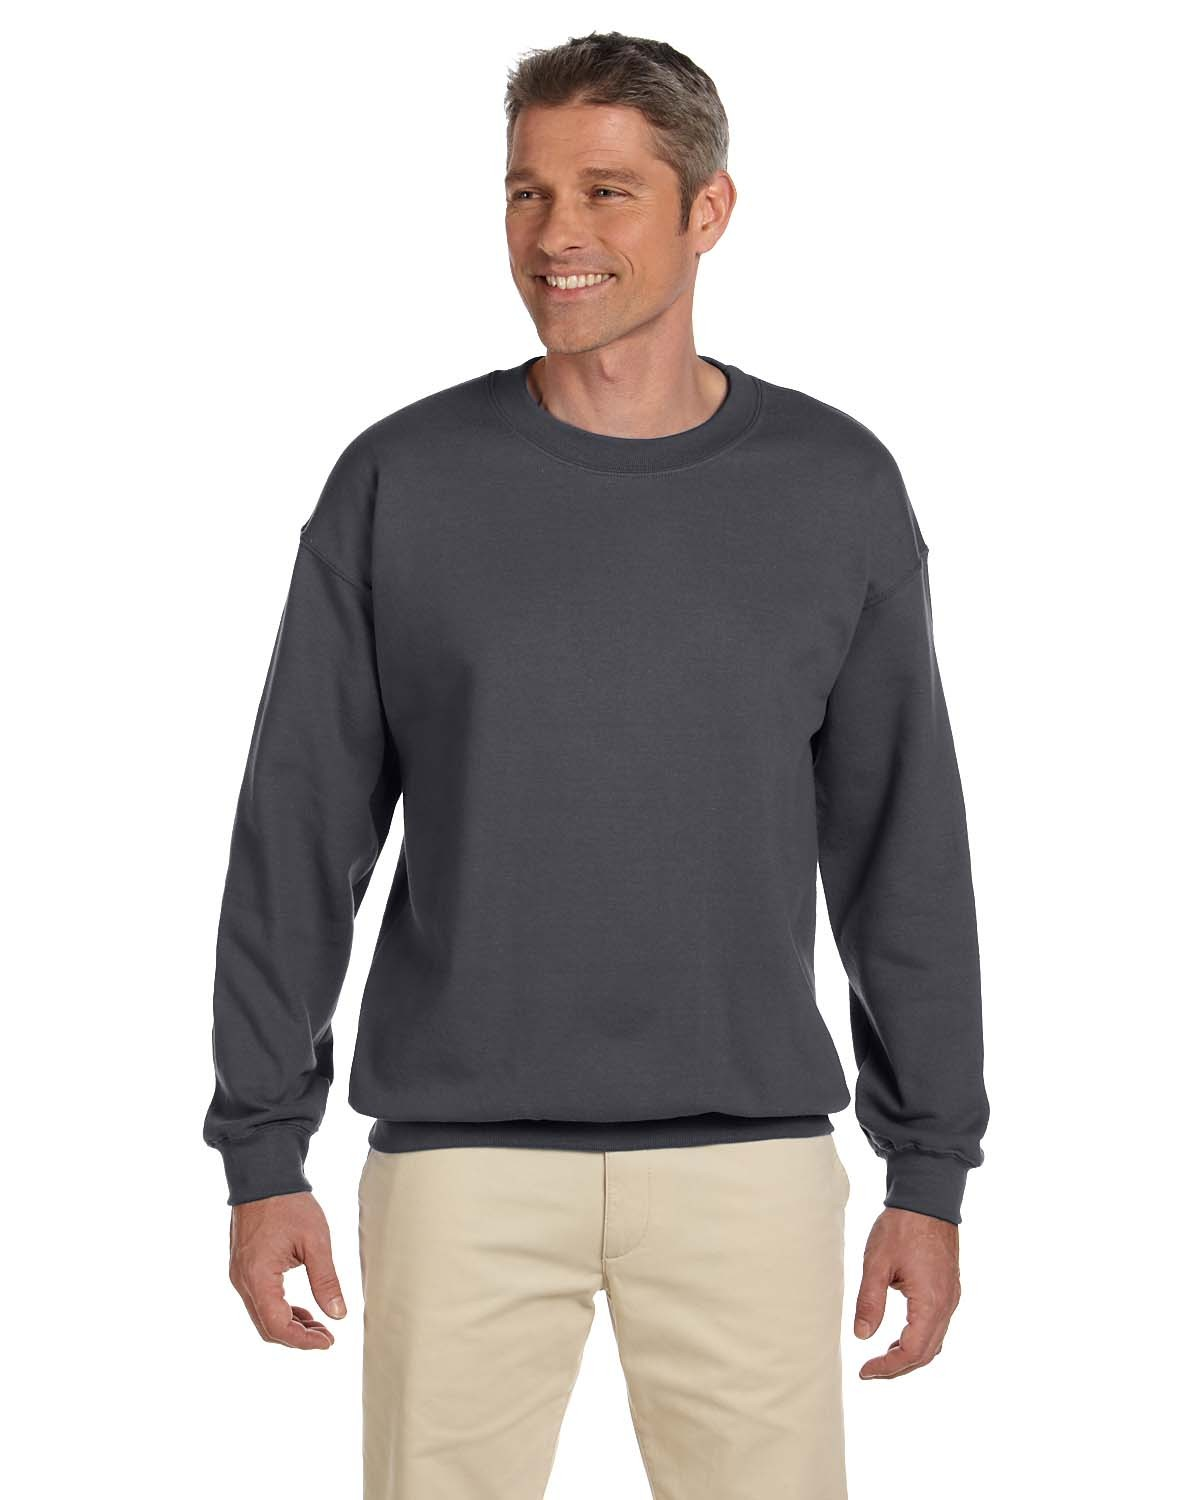 F260 Hanes CHARCOAL HEATHER